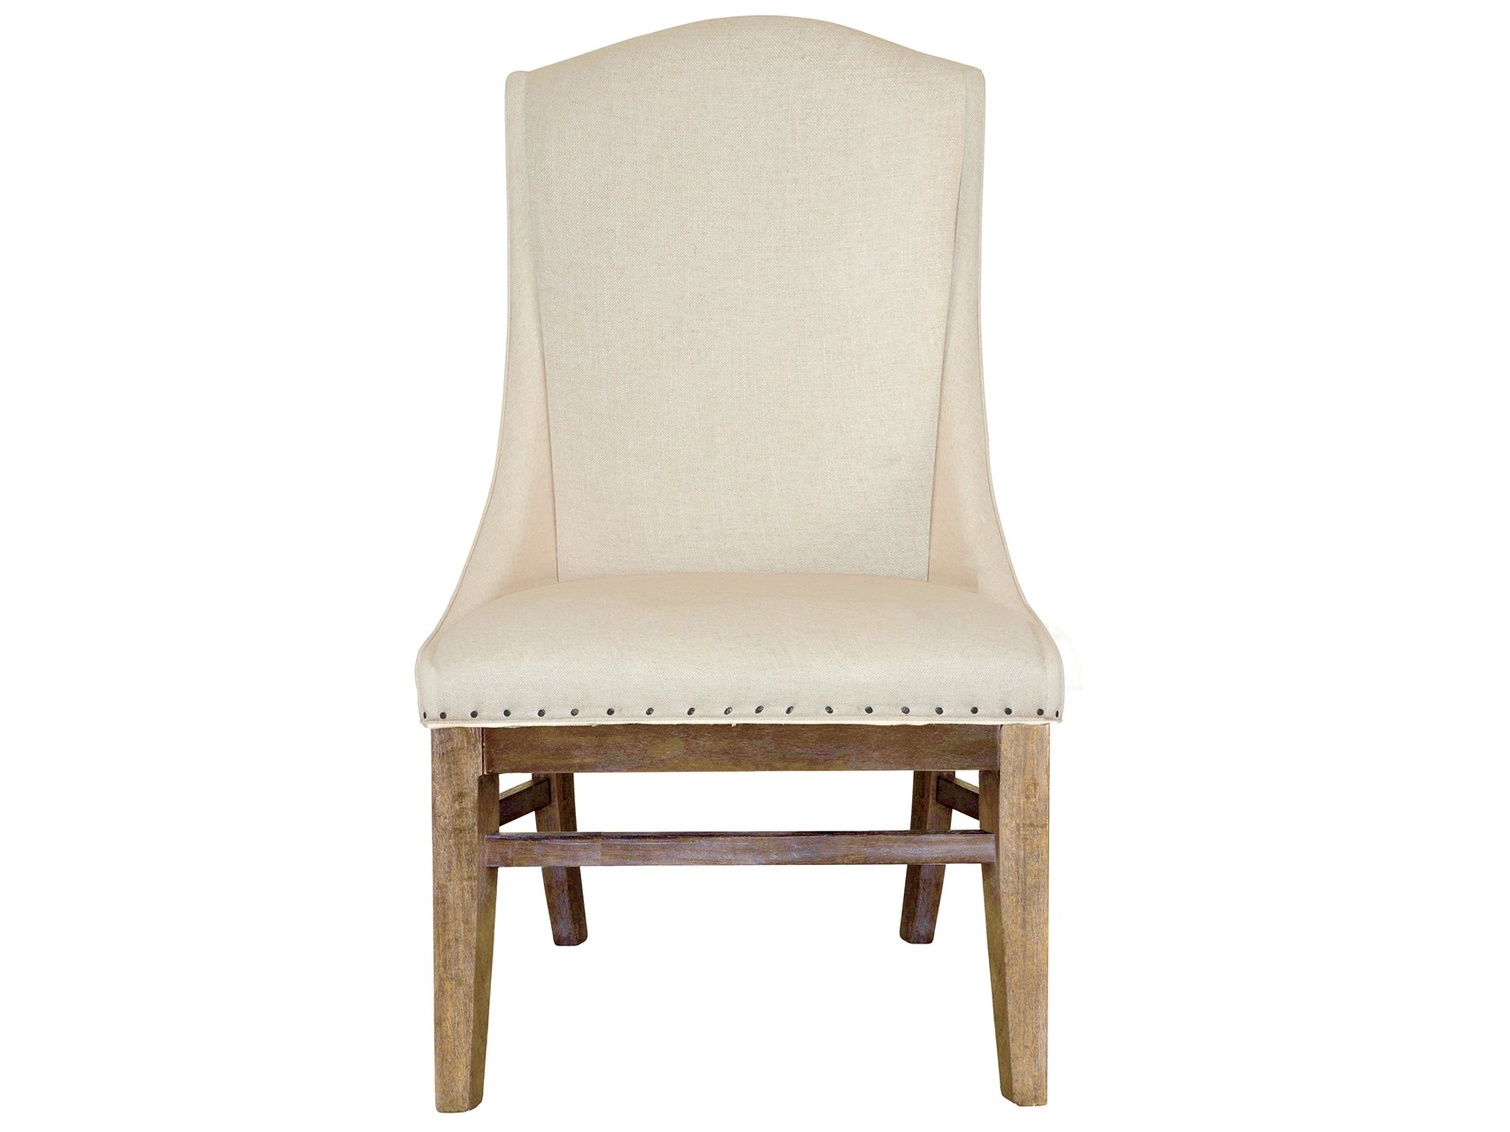 light upholstered urban pair of arm chairs